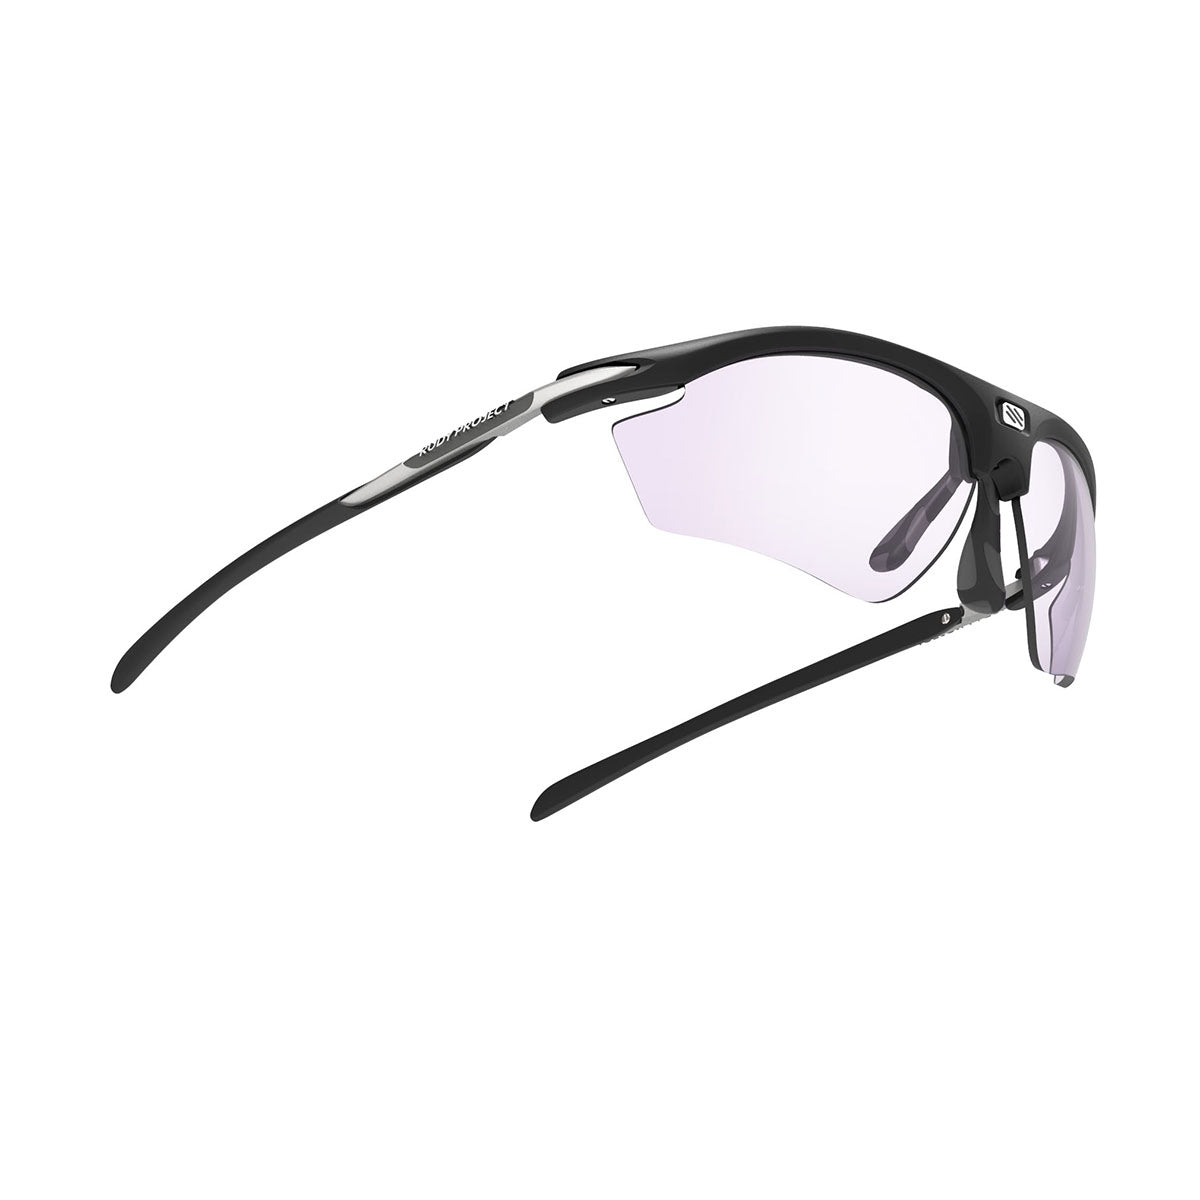 Rudy Project - Rydon Golf - frame color: Matte Black - lens color: ImpactX-2 Photochromic Laser Purple - photo angle: Bottom Front Angle Variant Hover Image